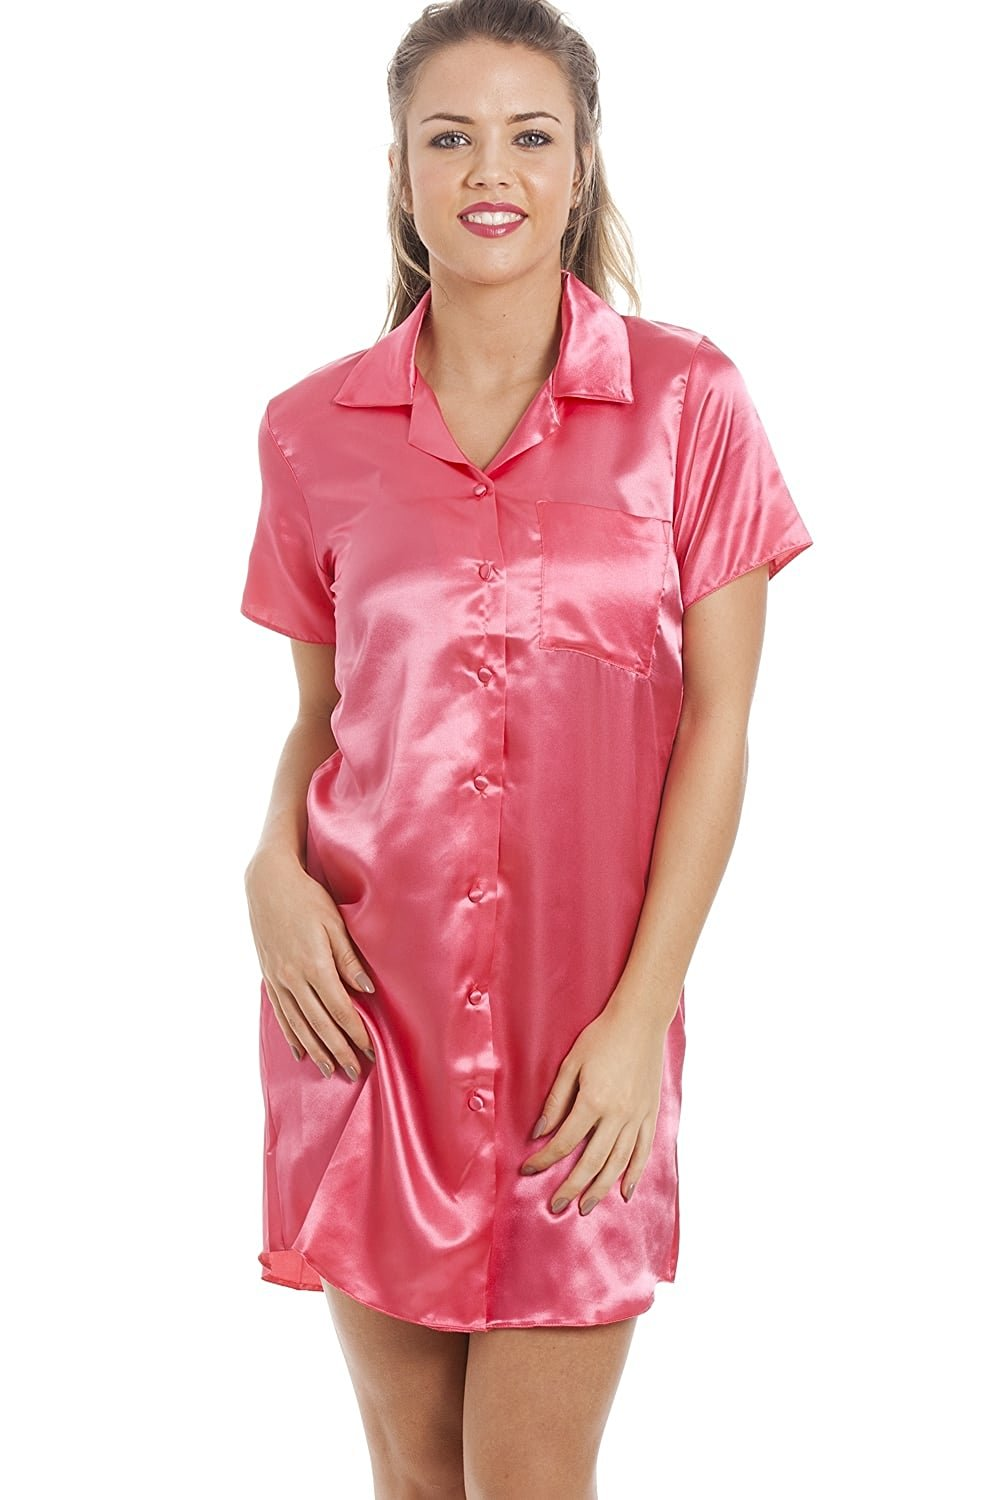 42fcf9a463 Get Quotations · Camille Womens Ladies Luxurious Knee Length Coral Pink Satin  Nightshirt